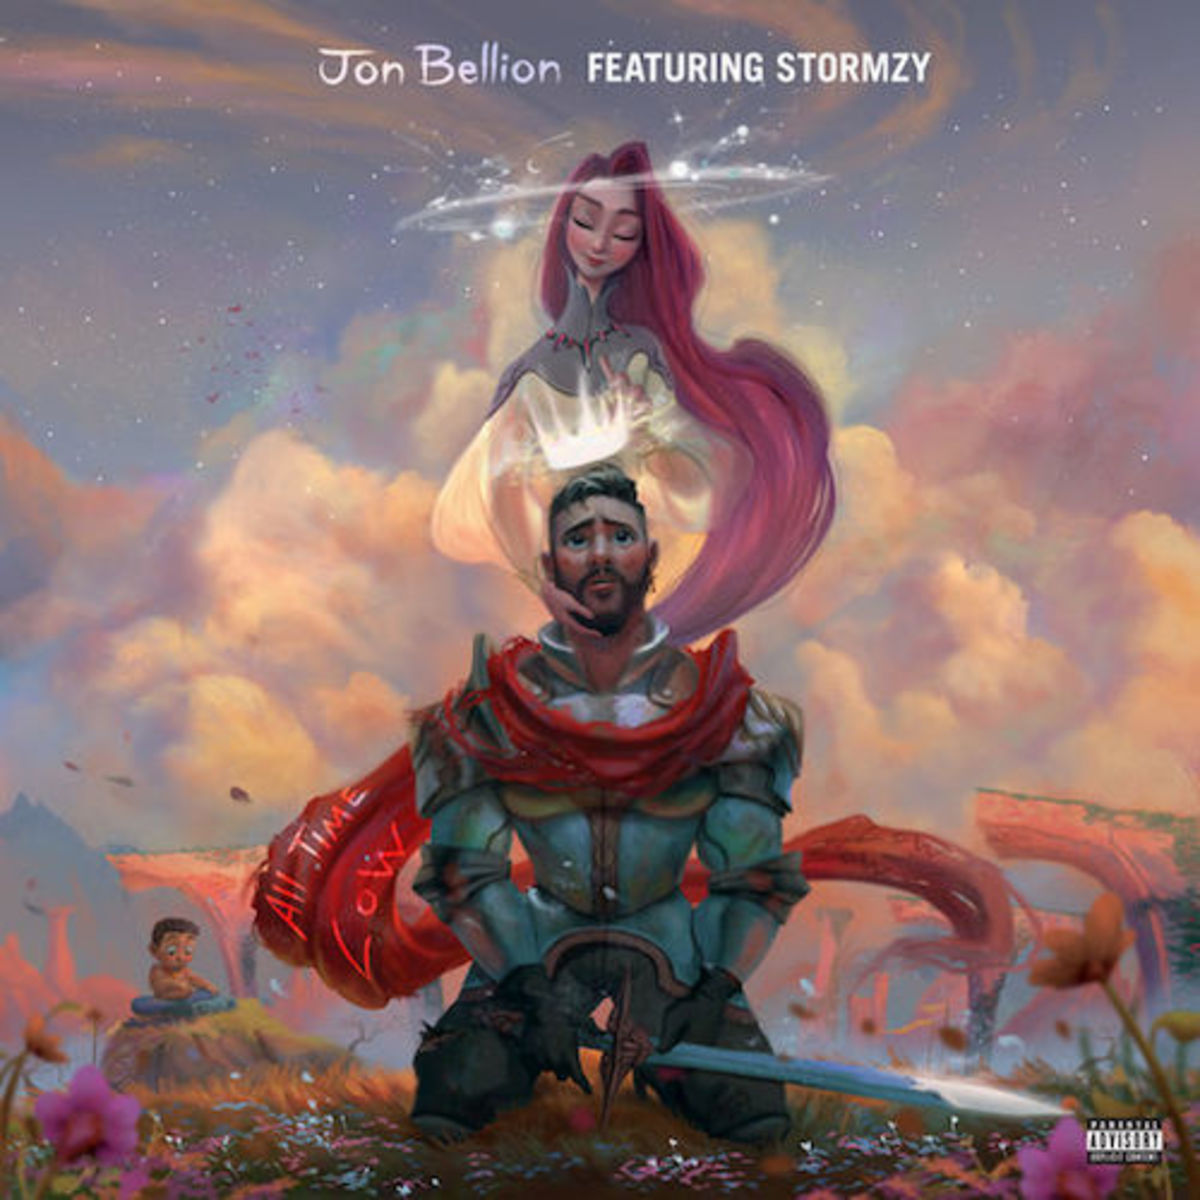 jon-bellion-all-time-low-remix-2.jpg